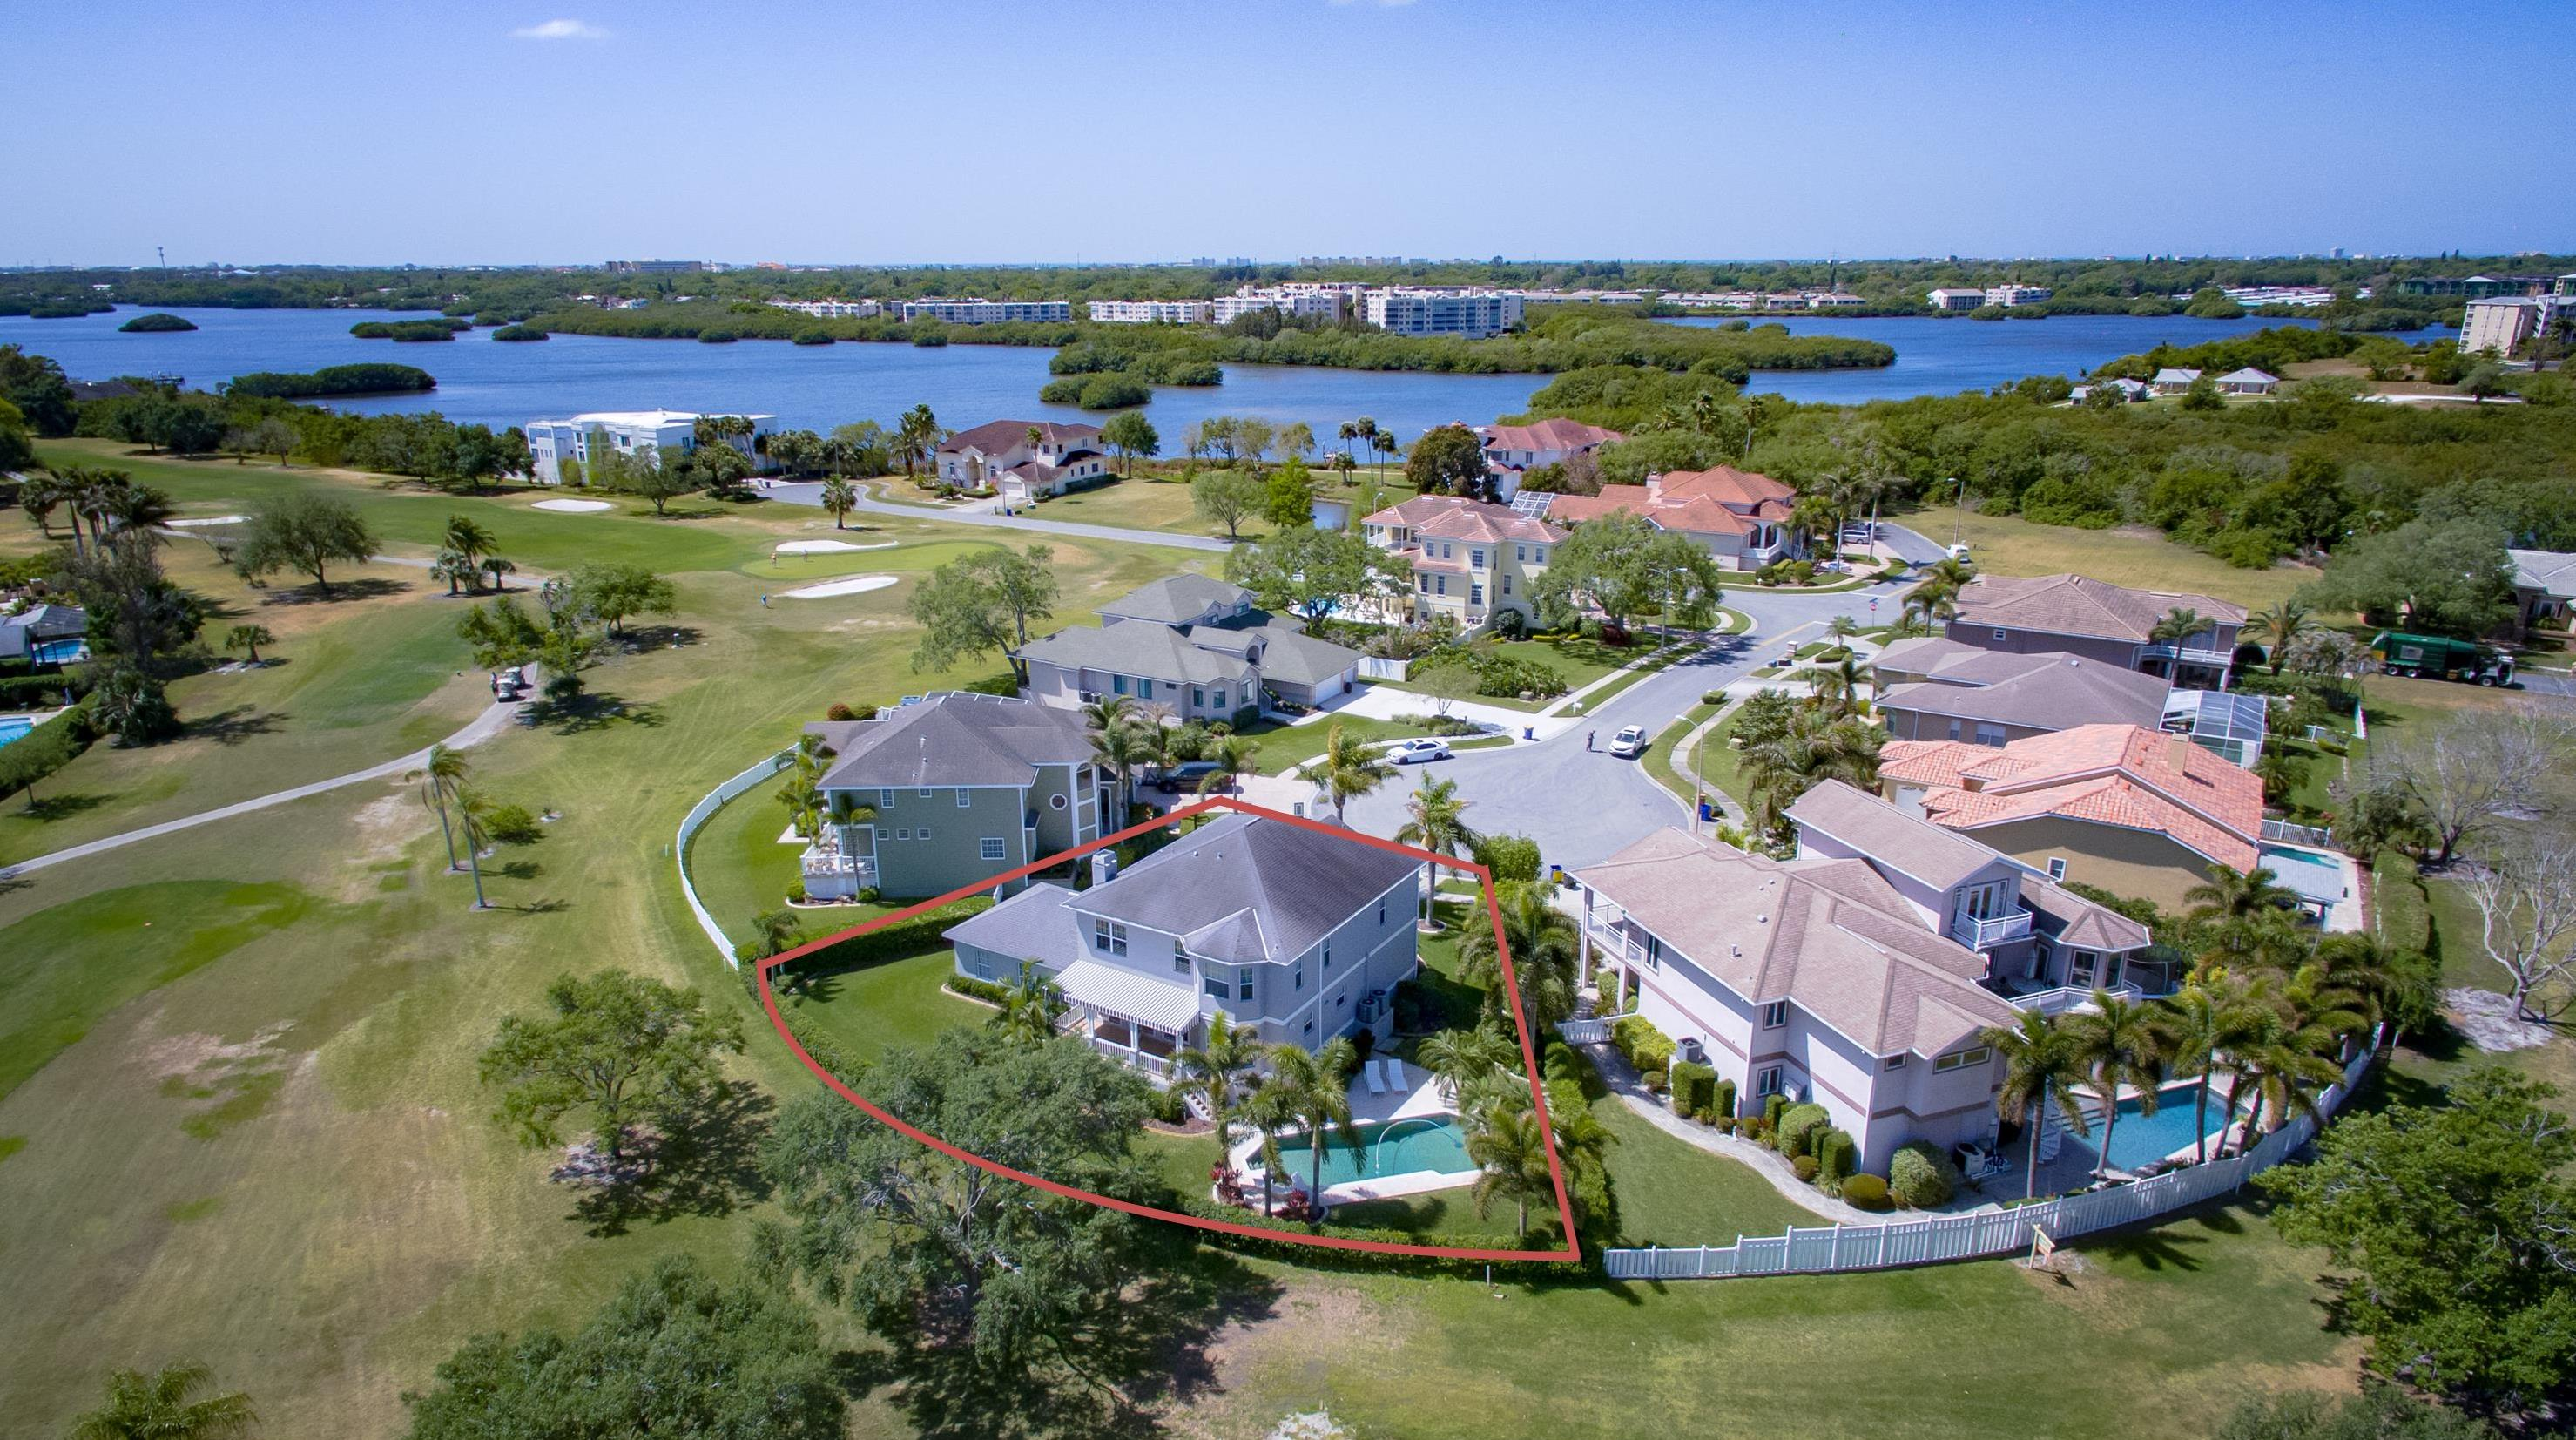 Aerial View of the Home and Golf Course